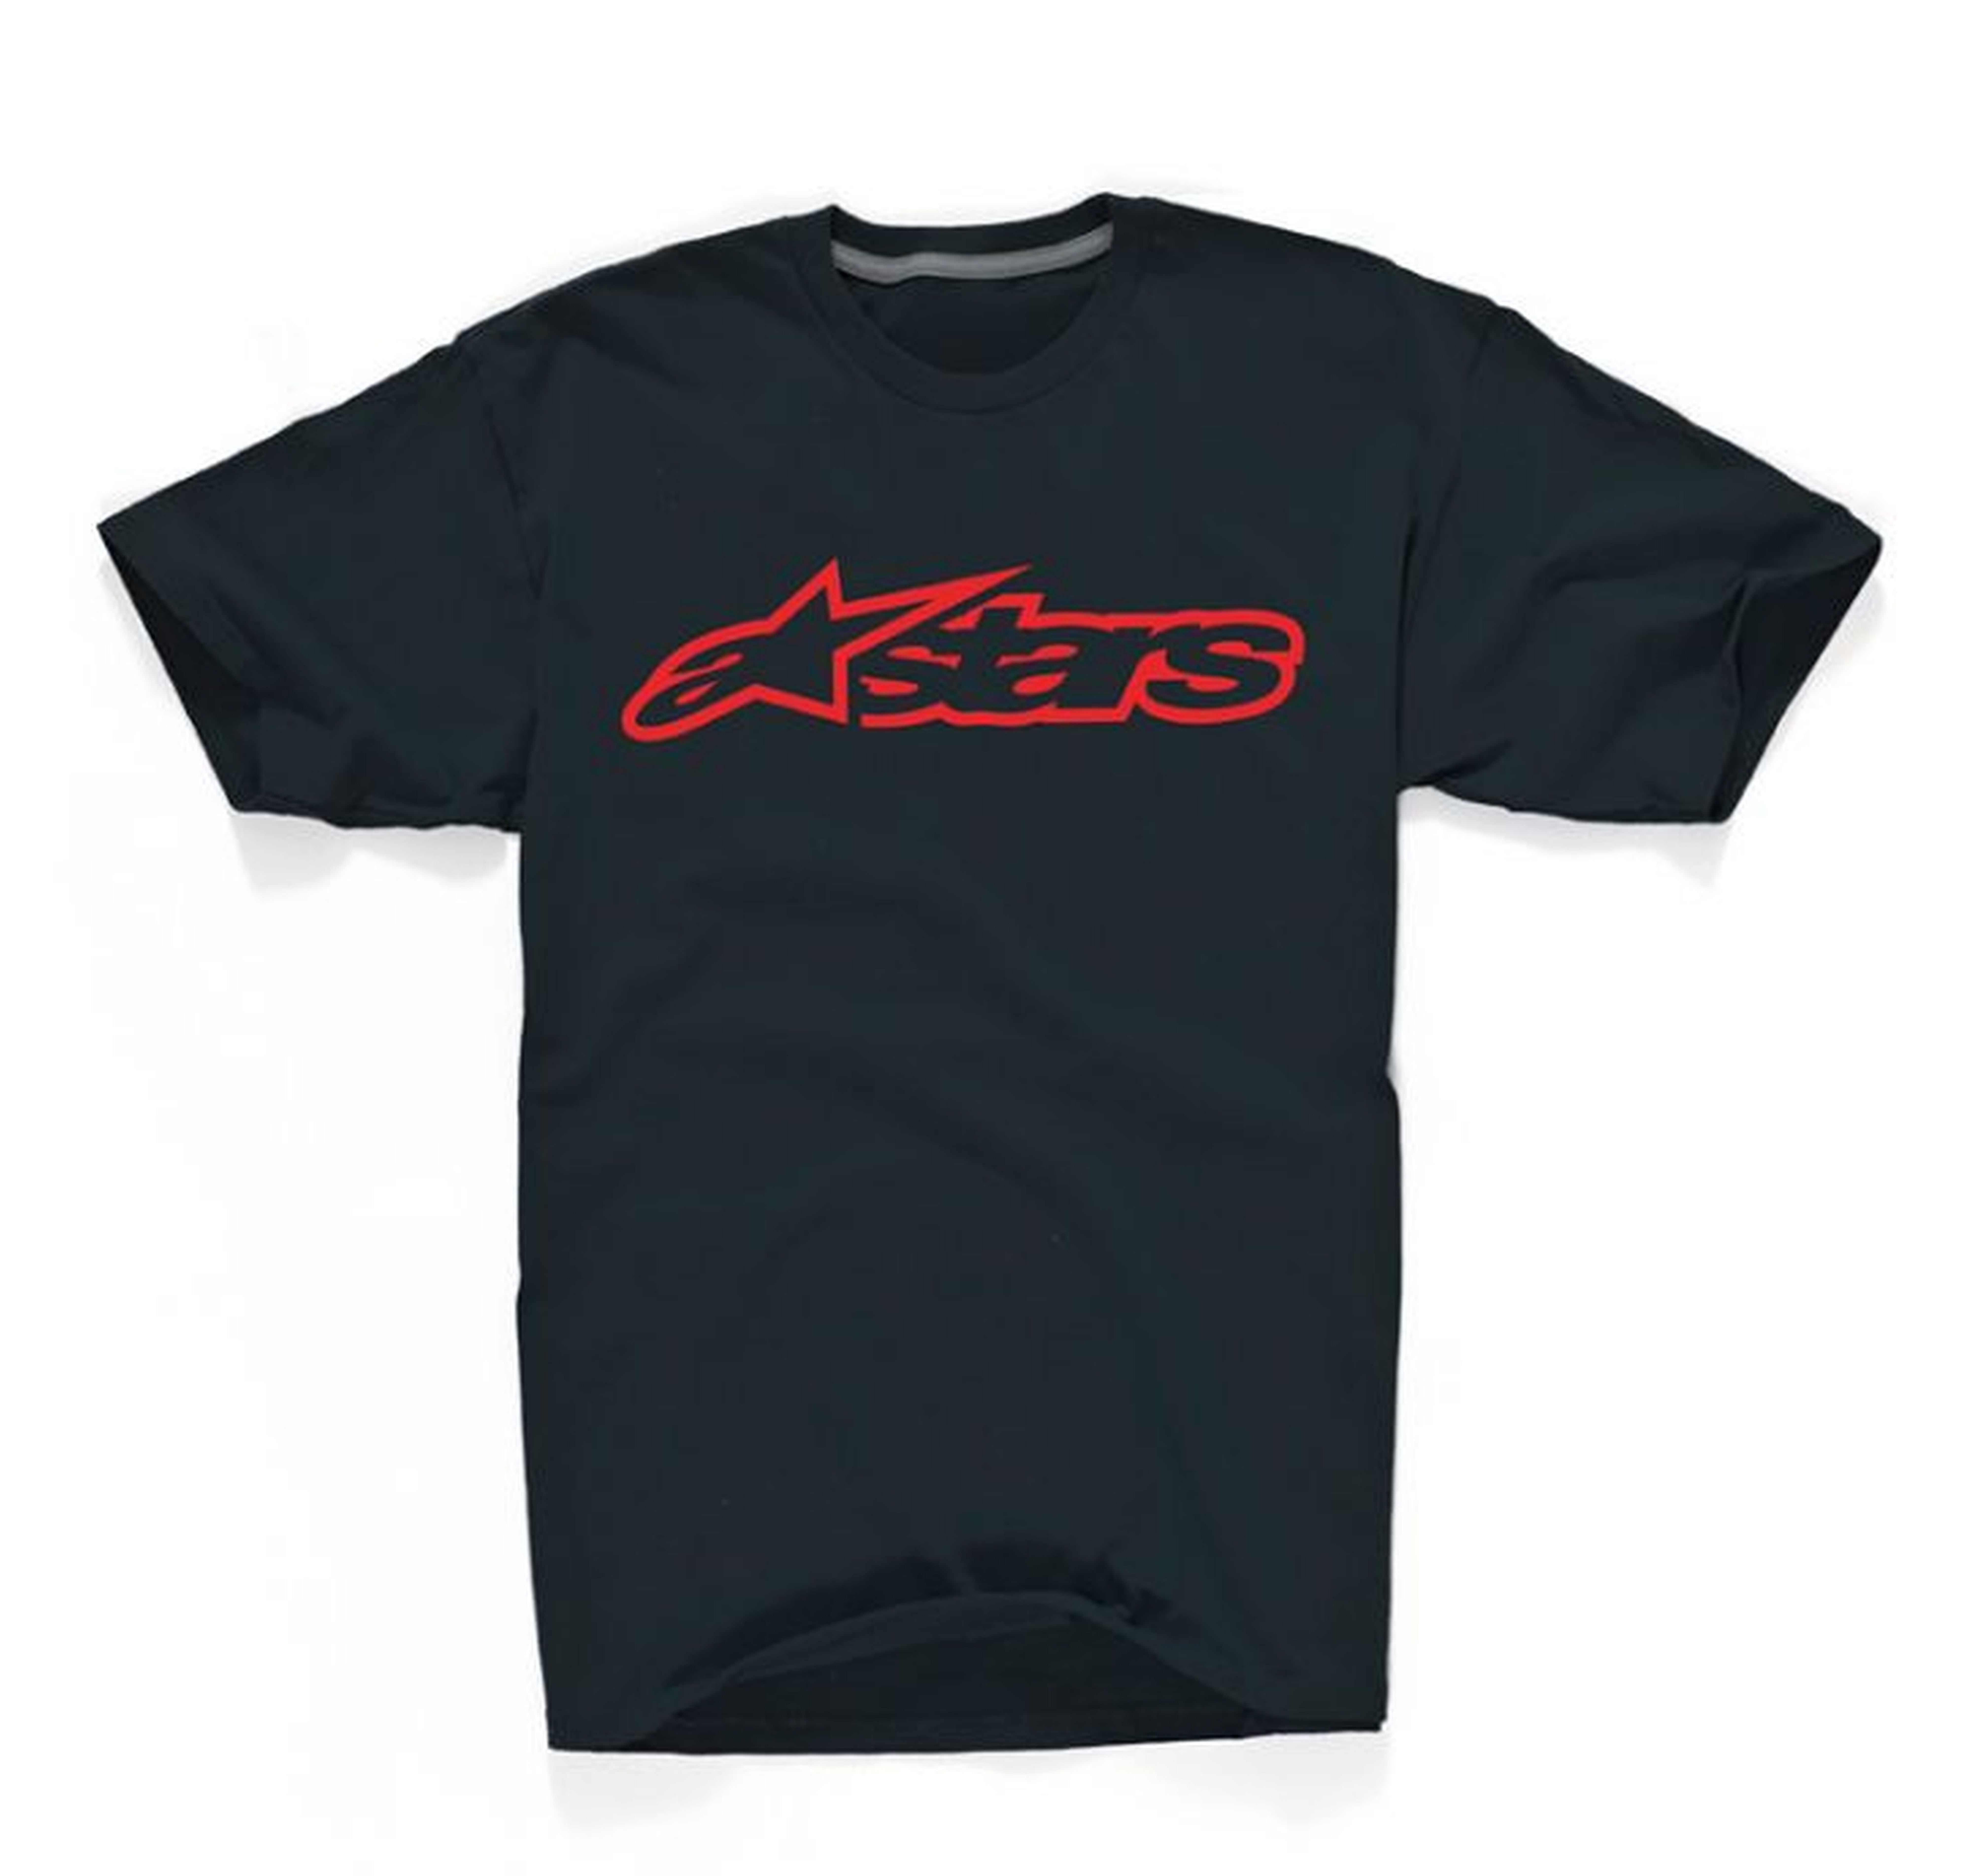 Alpinestars Blaze 2 Tech Tee Ride Dry - black/red - velikost M